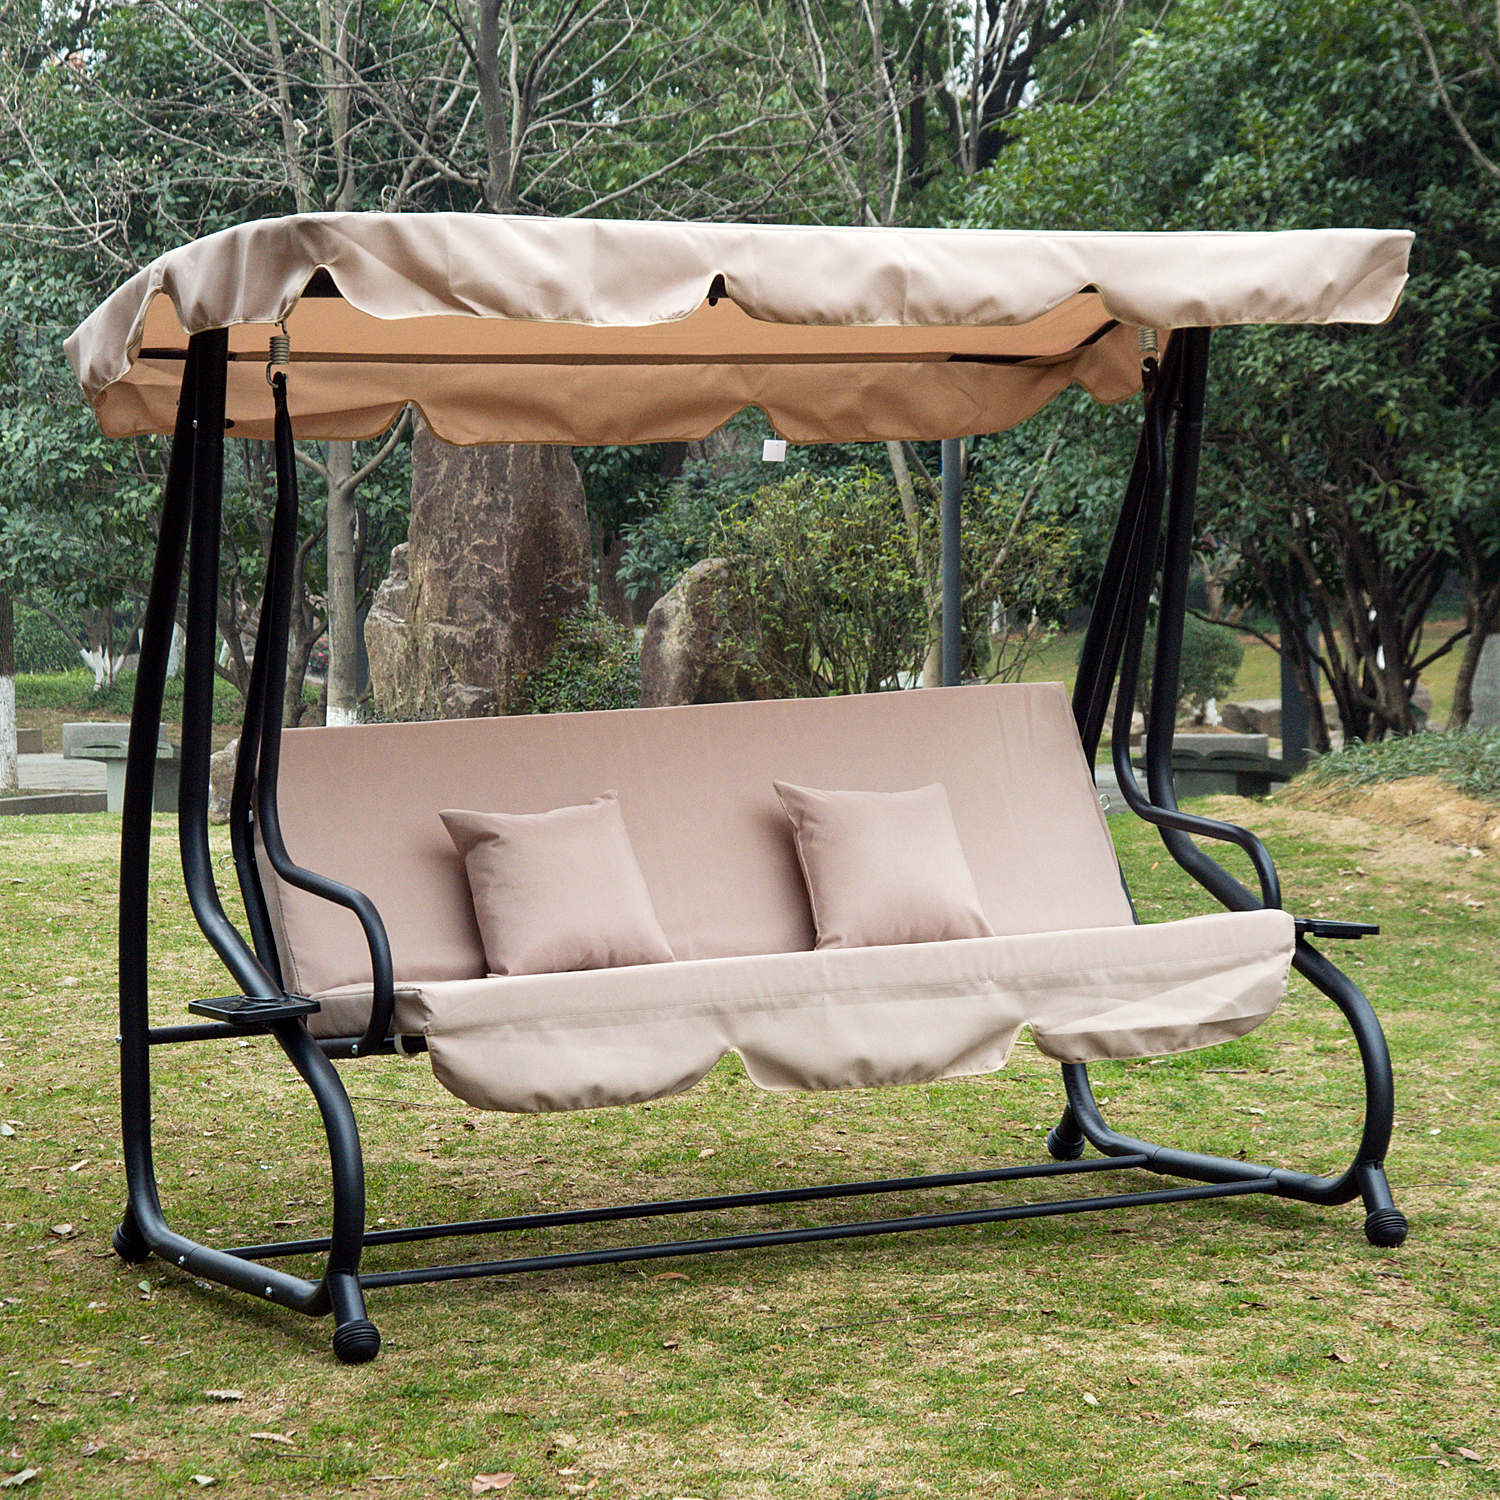 Outsunny 3 Seat Outdoor Free Standing Covered Swing Bench Beige